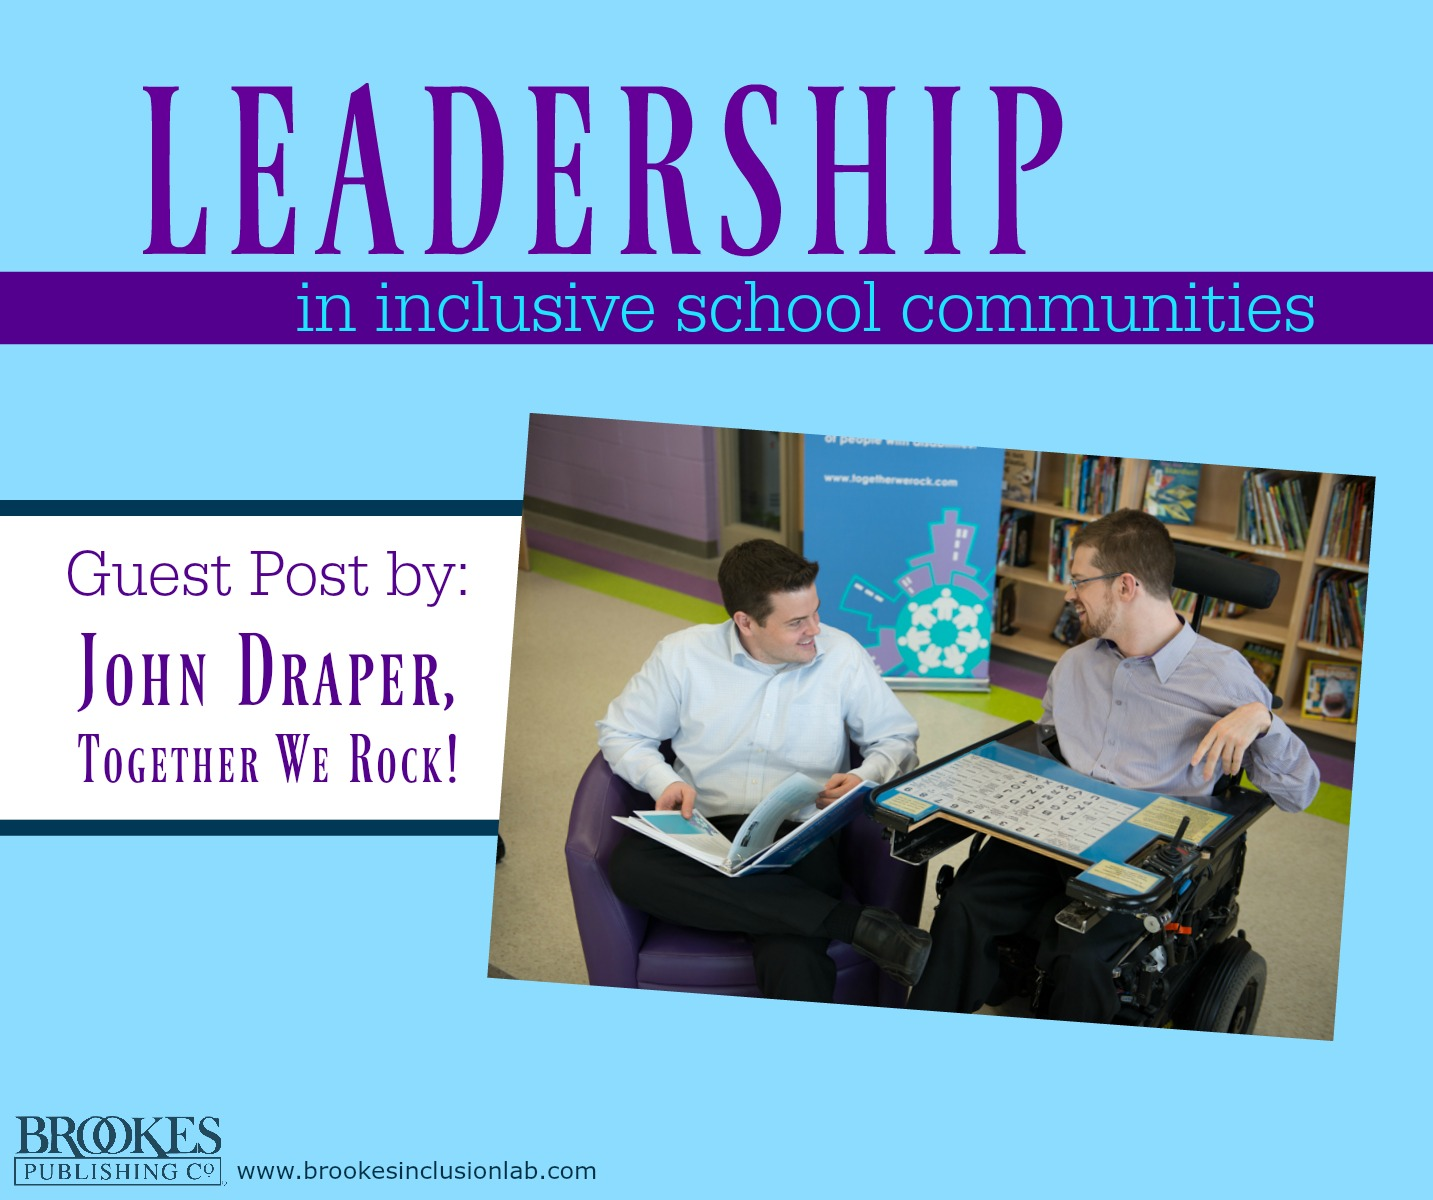 Inspiring Leadership to Create an Inclusive School Community John Draper Guest Post